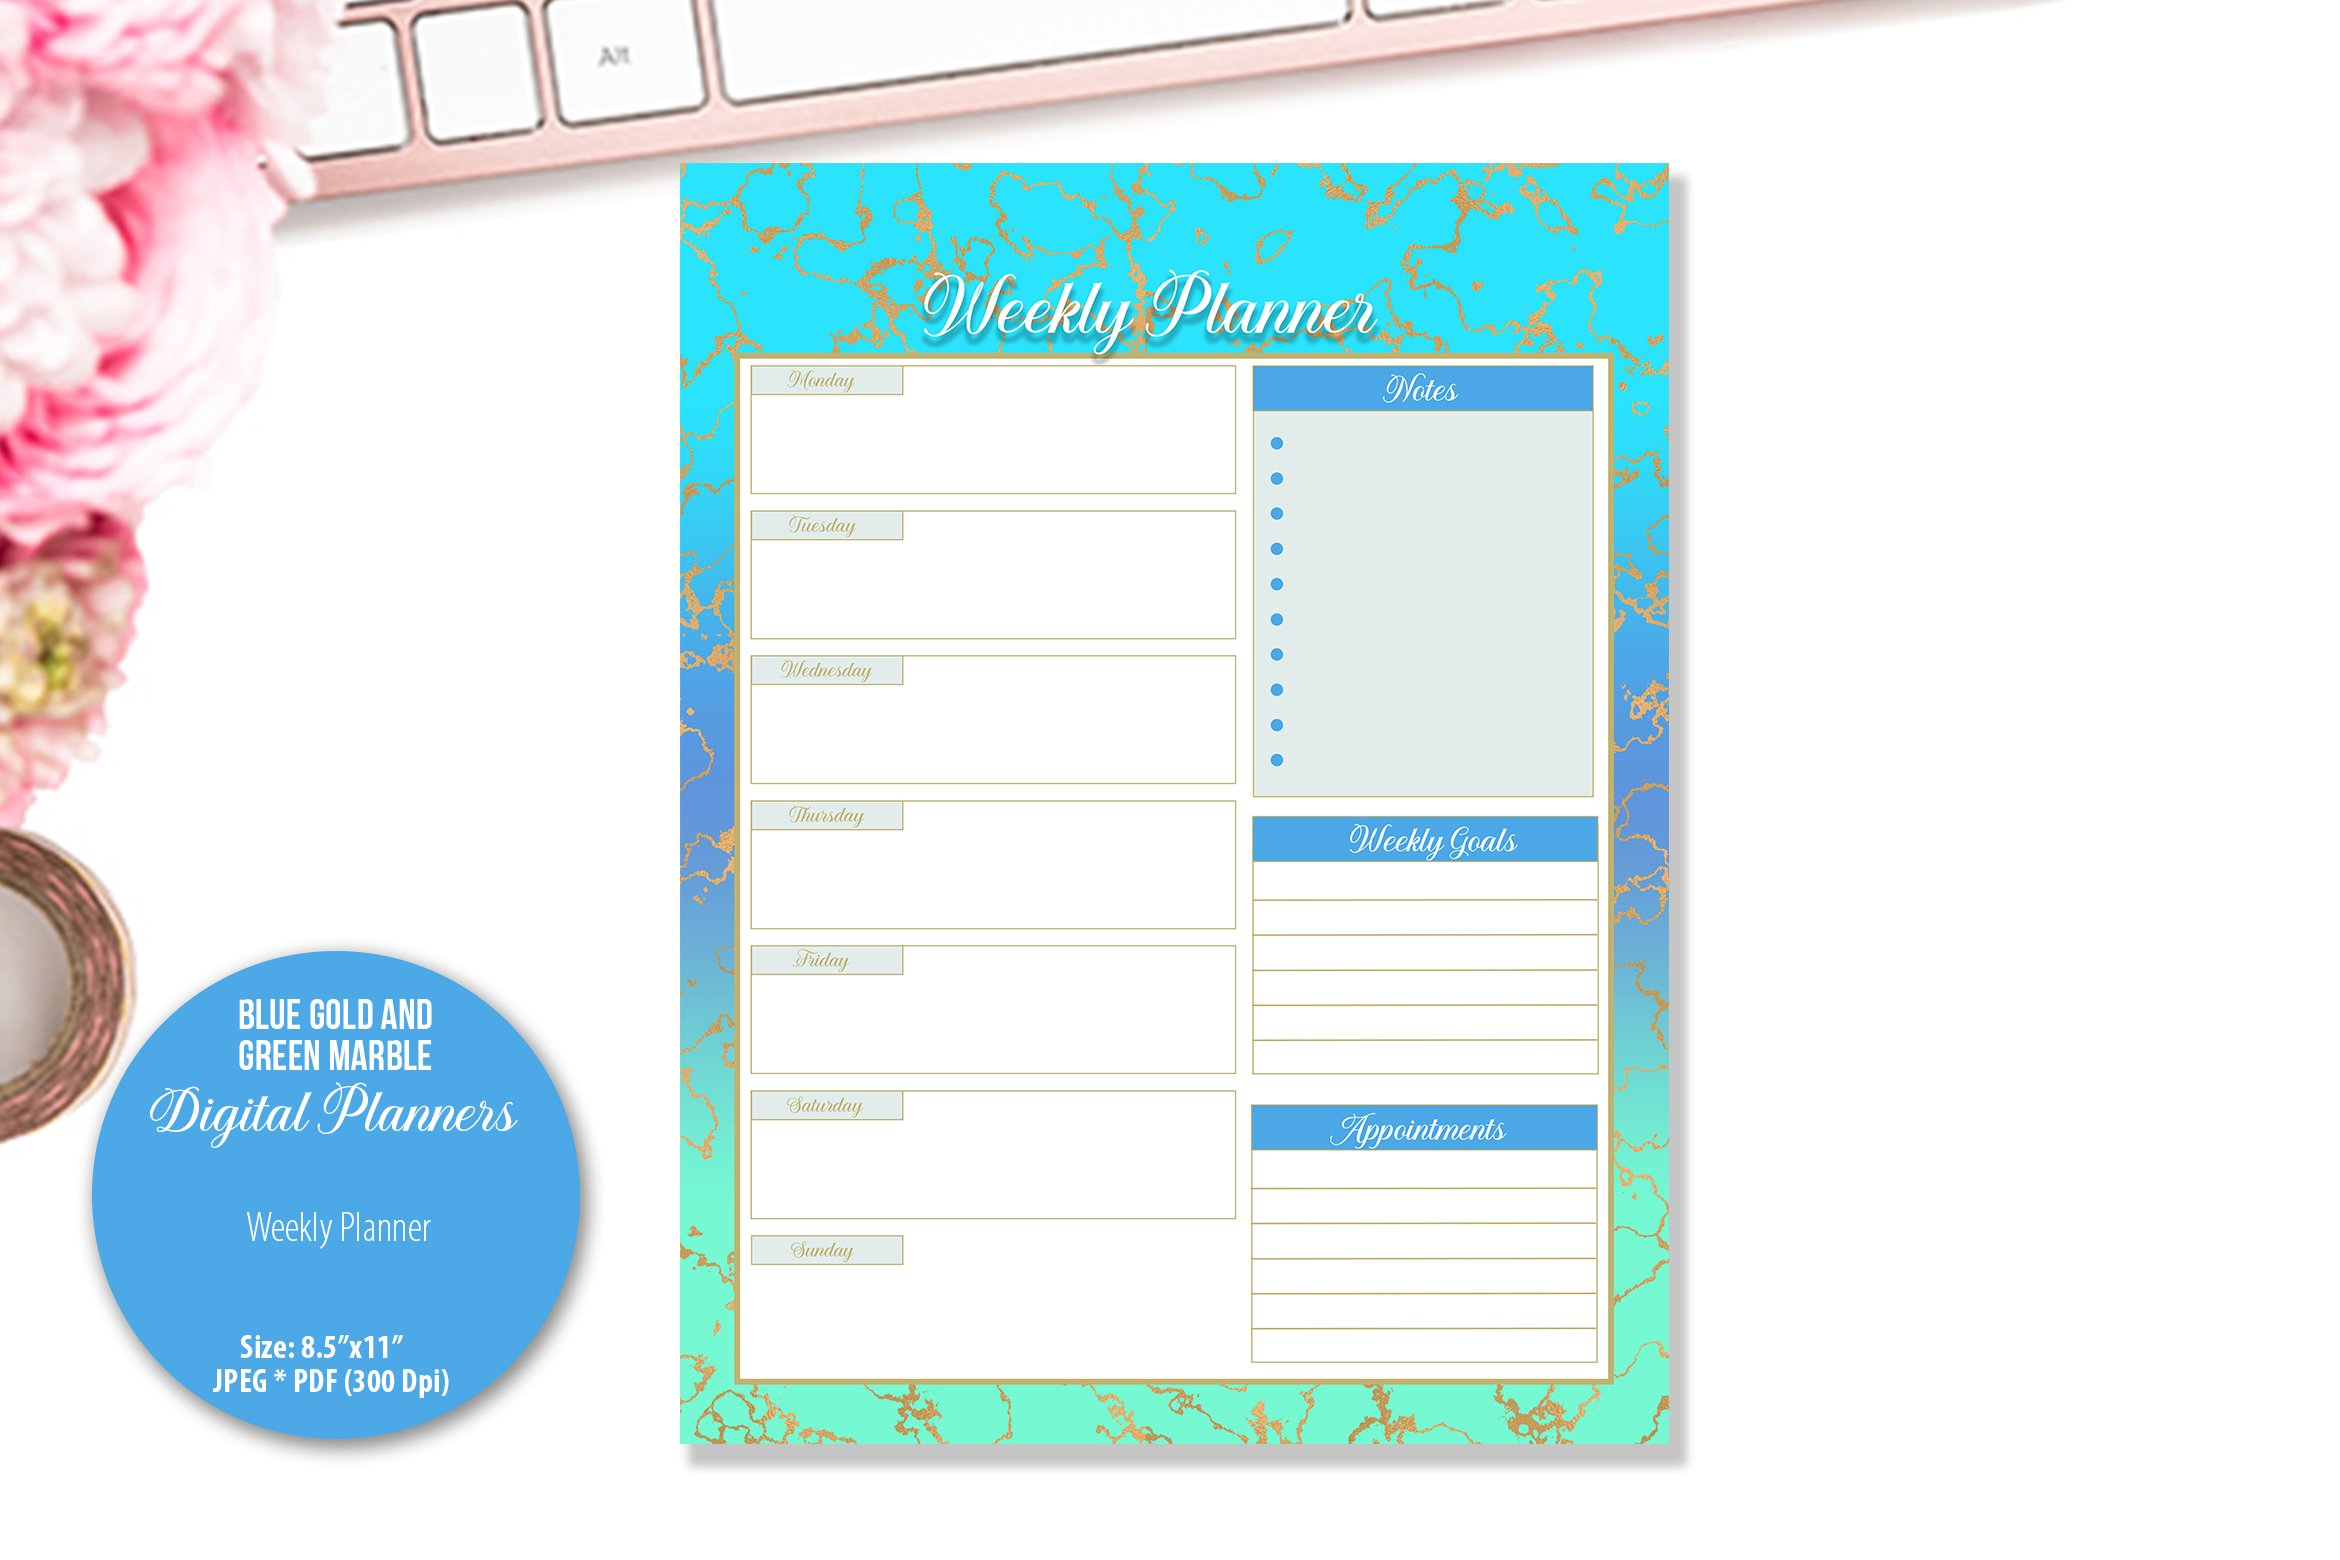 Blue Gold and Green Marble Digital Planner example image 3